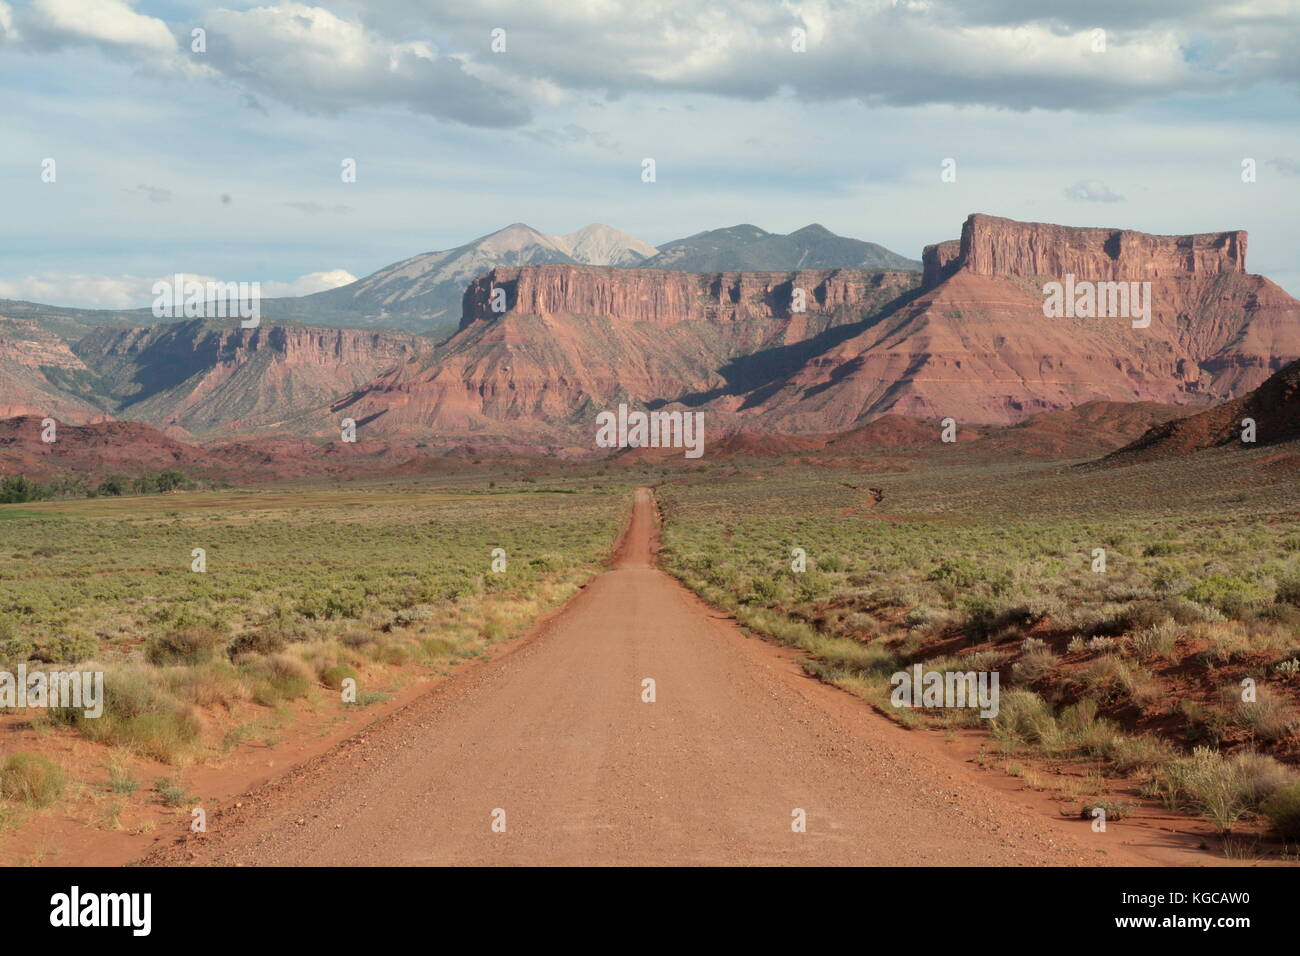 Western Wallpaper Photos Western Wallpaper Images Alamy